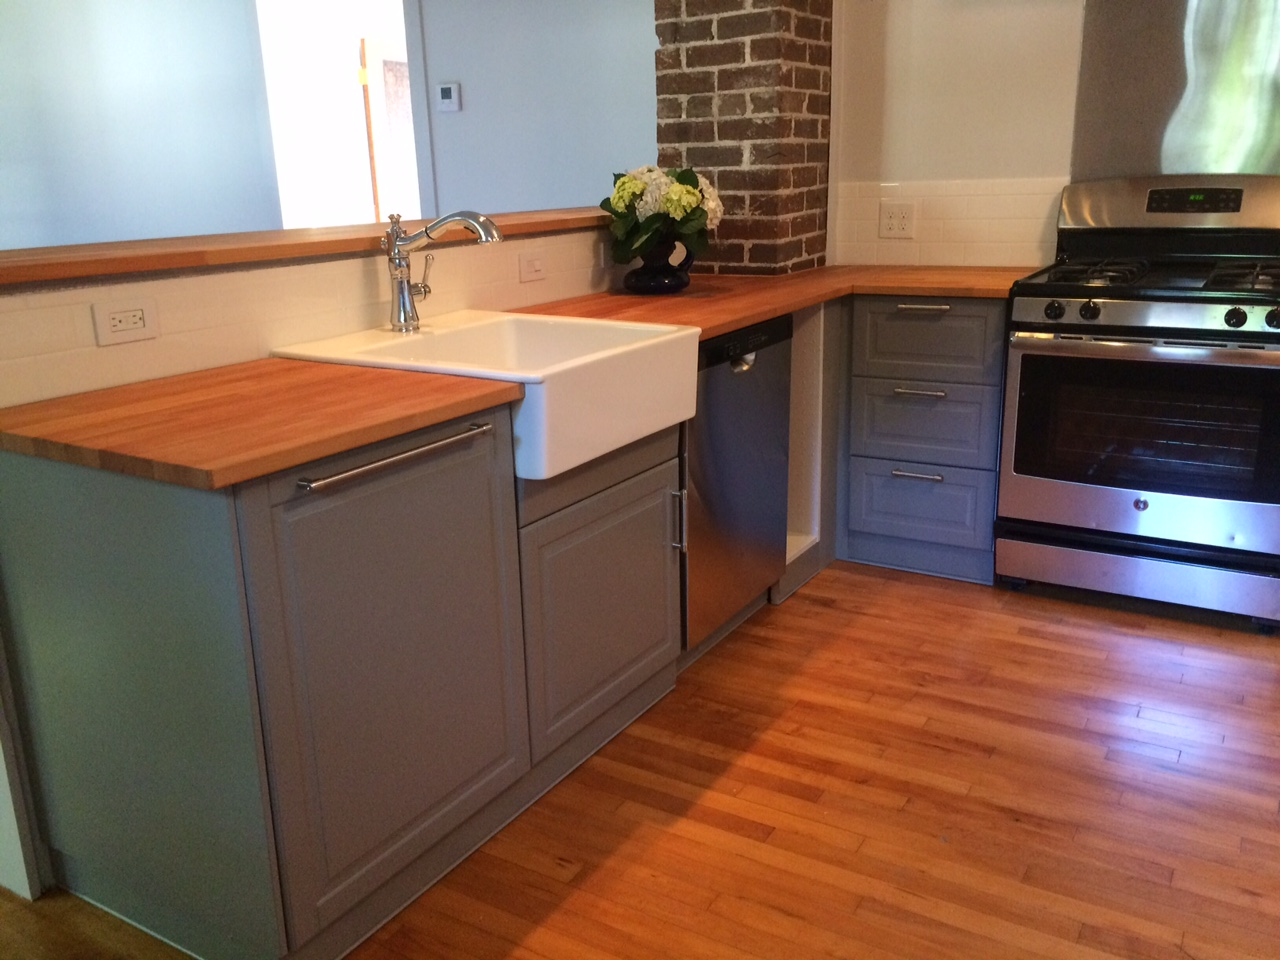 An ikea kitchen renovation saves this 1920s bungalow home for Bungalow kitchen layout